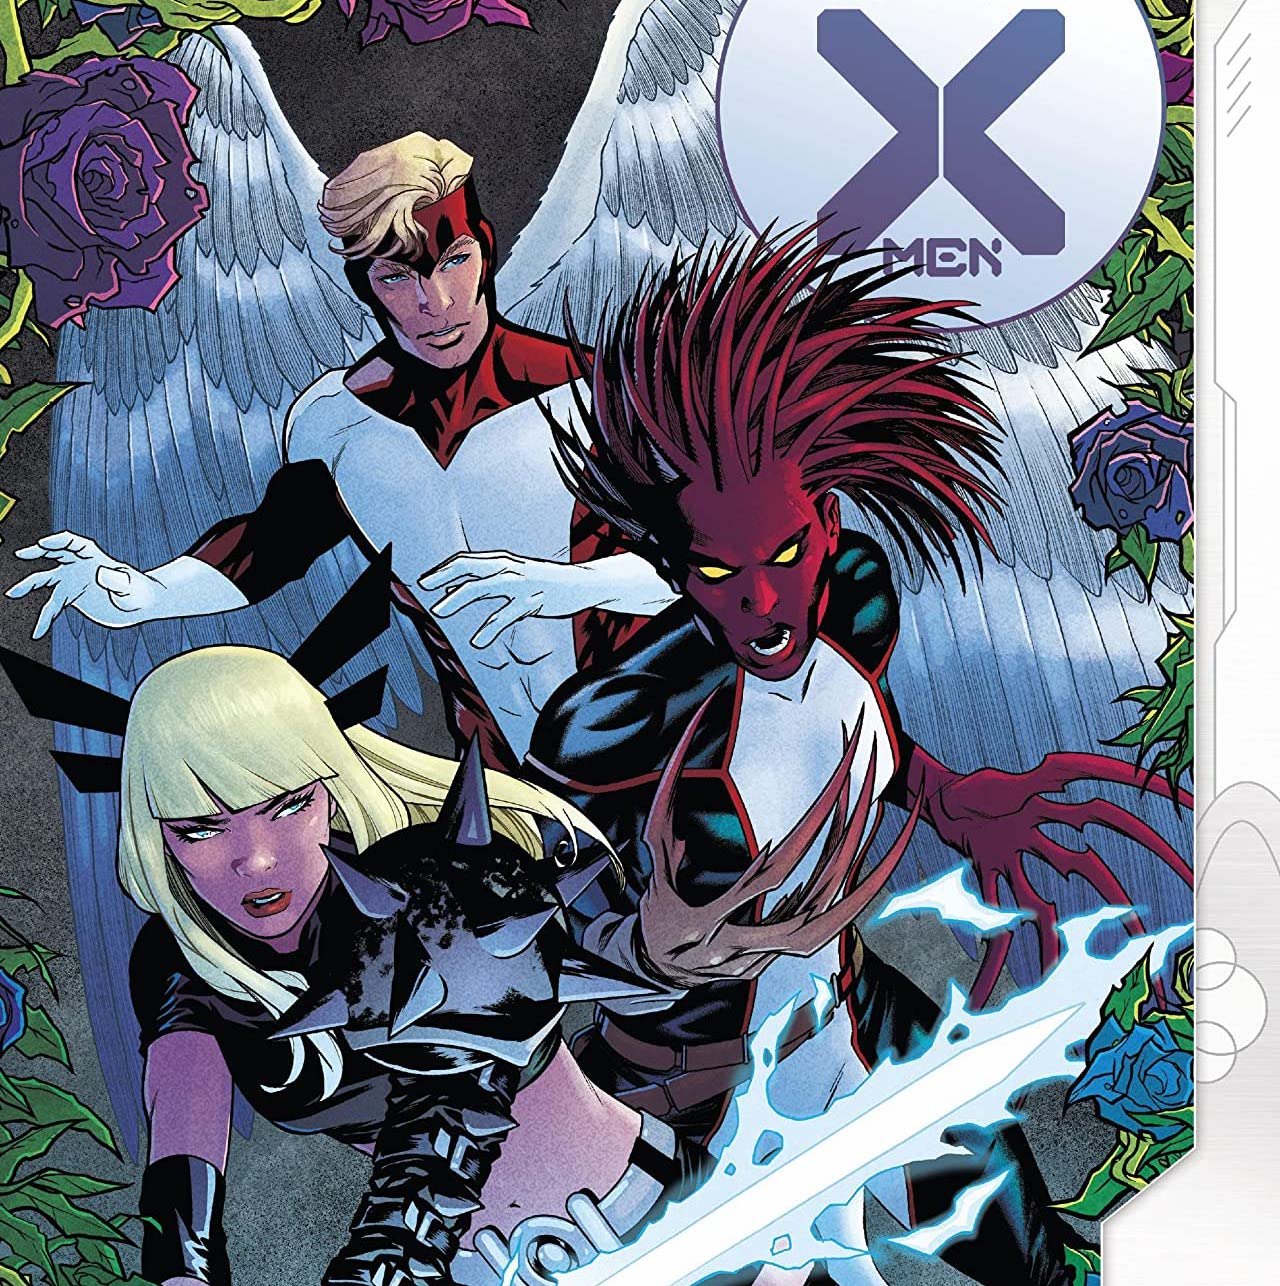 A properly sharpened X-Men tie-in series.